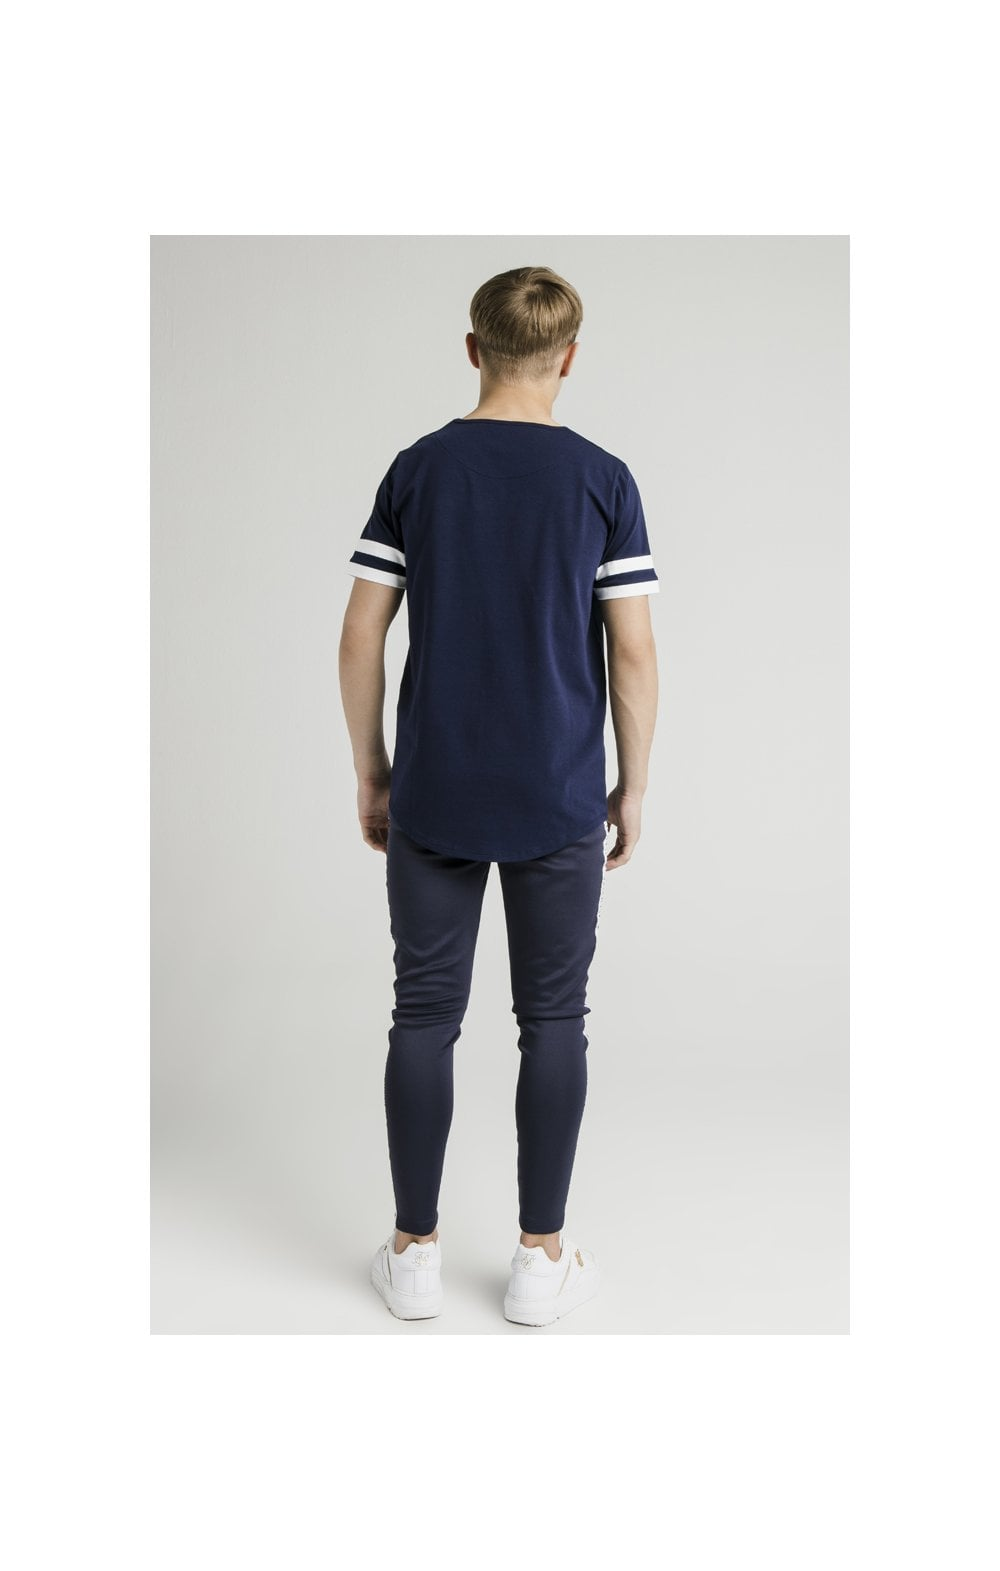 Load image into Gallery viewer, Illusive London Tournament Tee - Navy & White (4)